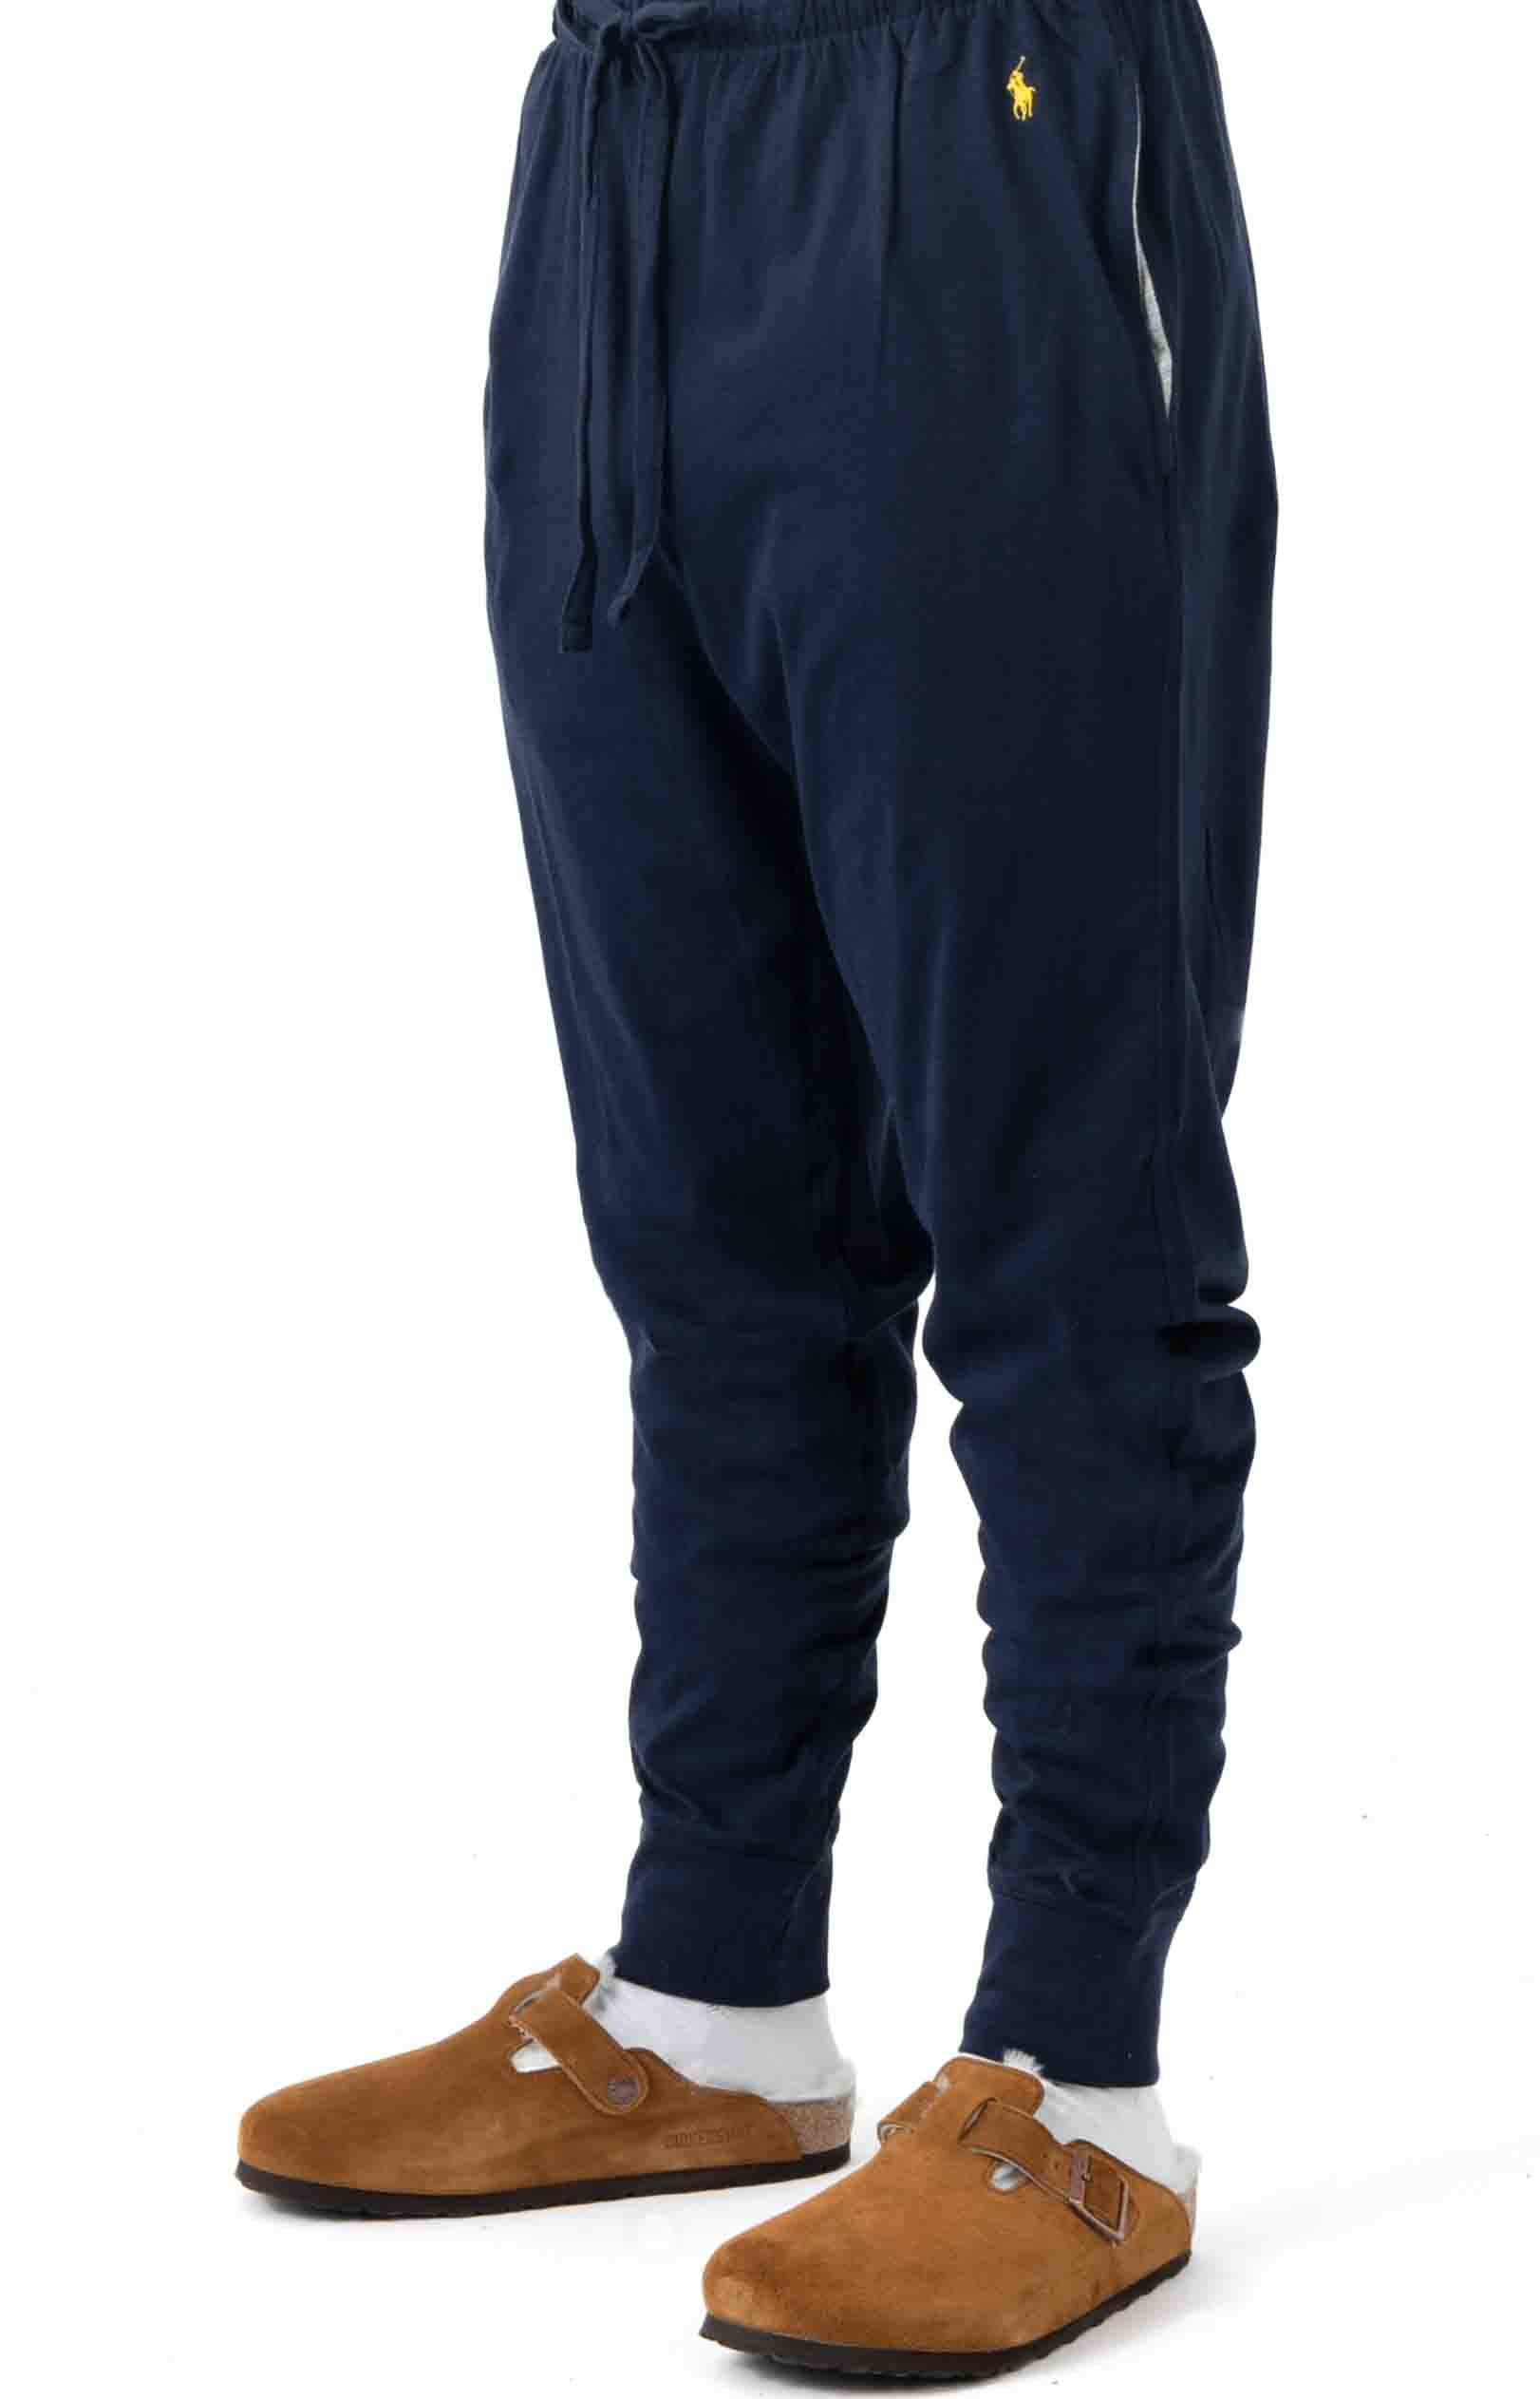 (L2049V) Relaxed Fit Jogger Cuff Sleep Pant - Cruise Navy